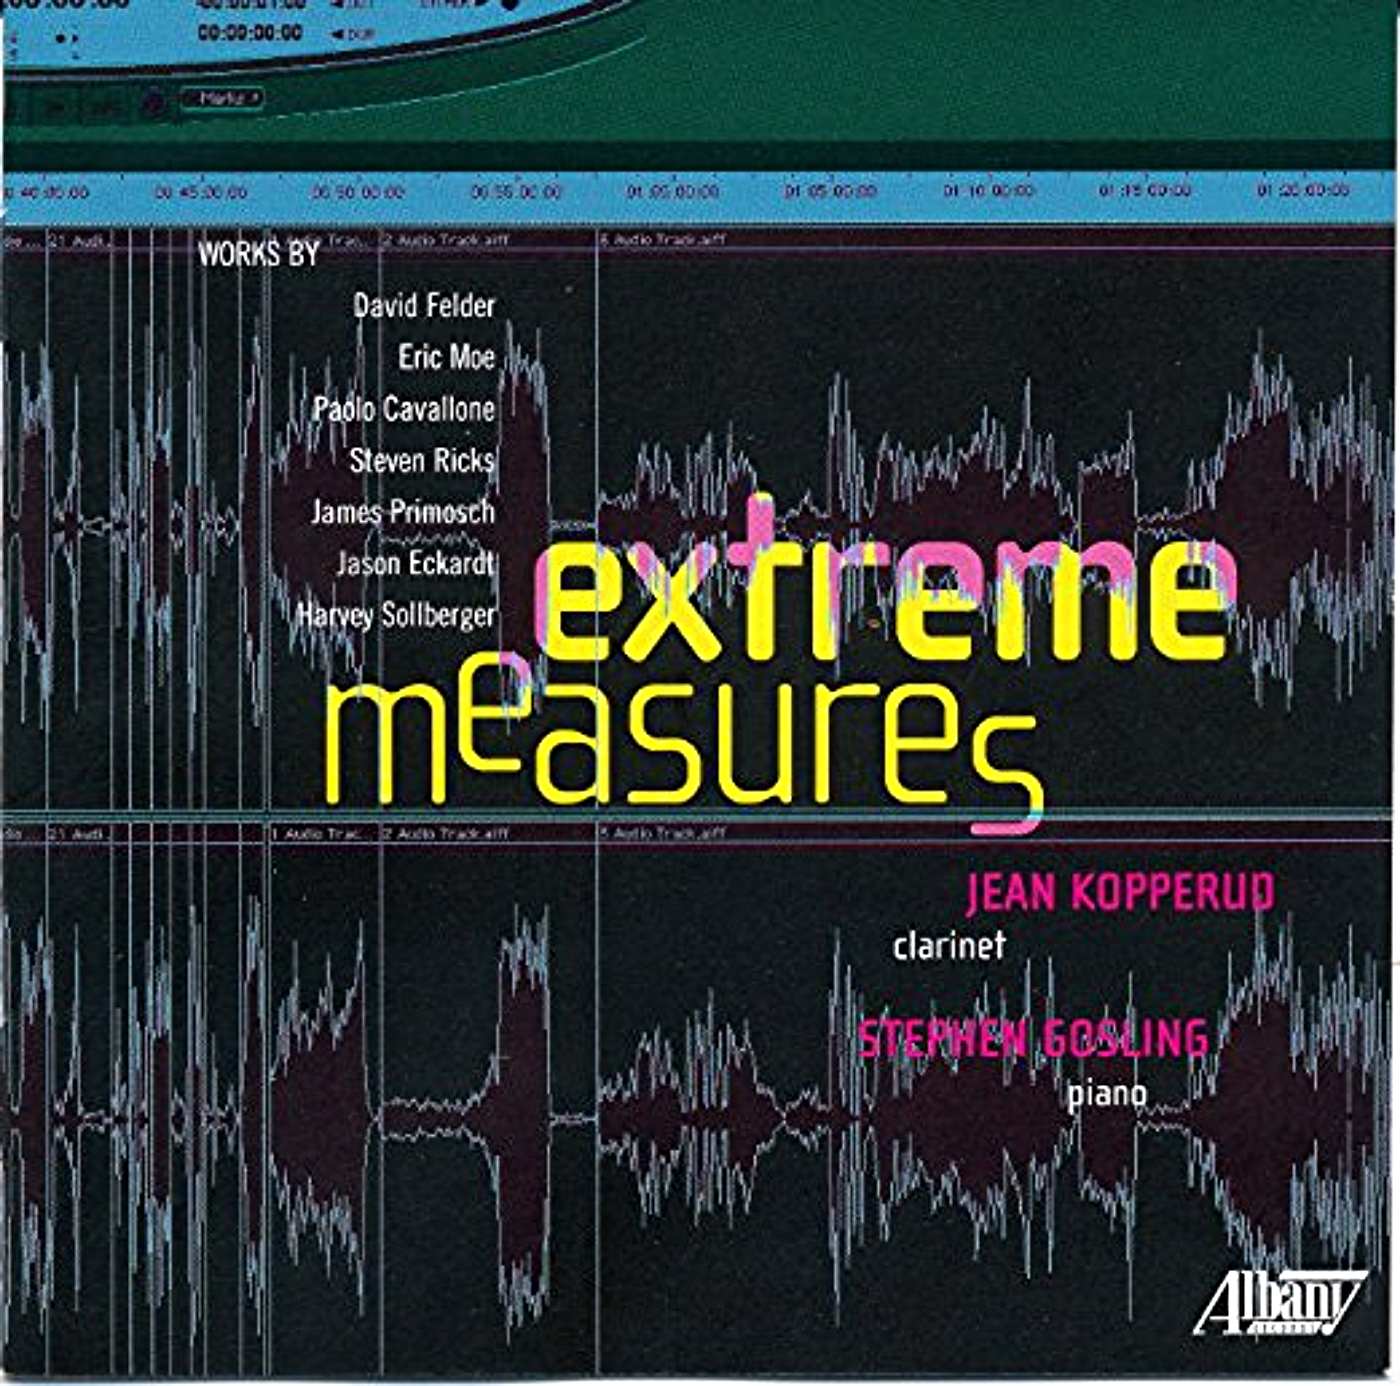 extreme measures - My piece Amygdala (2008), for Bb and bass clarinet, piano, and electronics, appears on this ambitious double-CD by new music pioneer Jean Kopperud and pianist phenom Stephen Gosling. It definitely goes to 11...check it out!